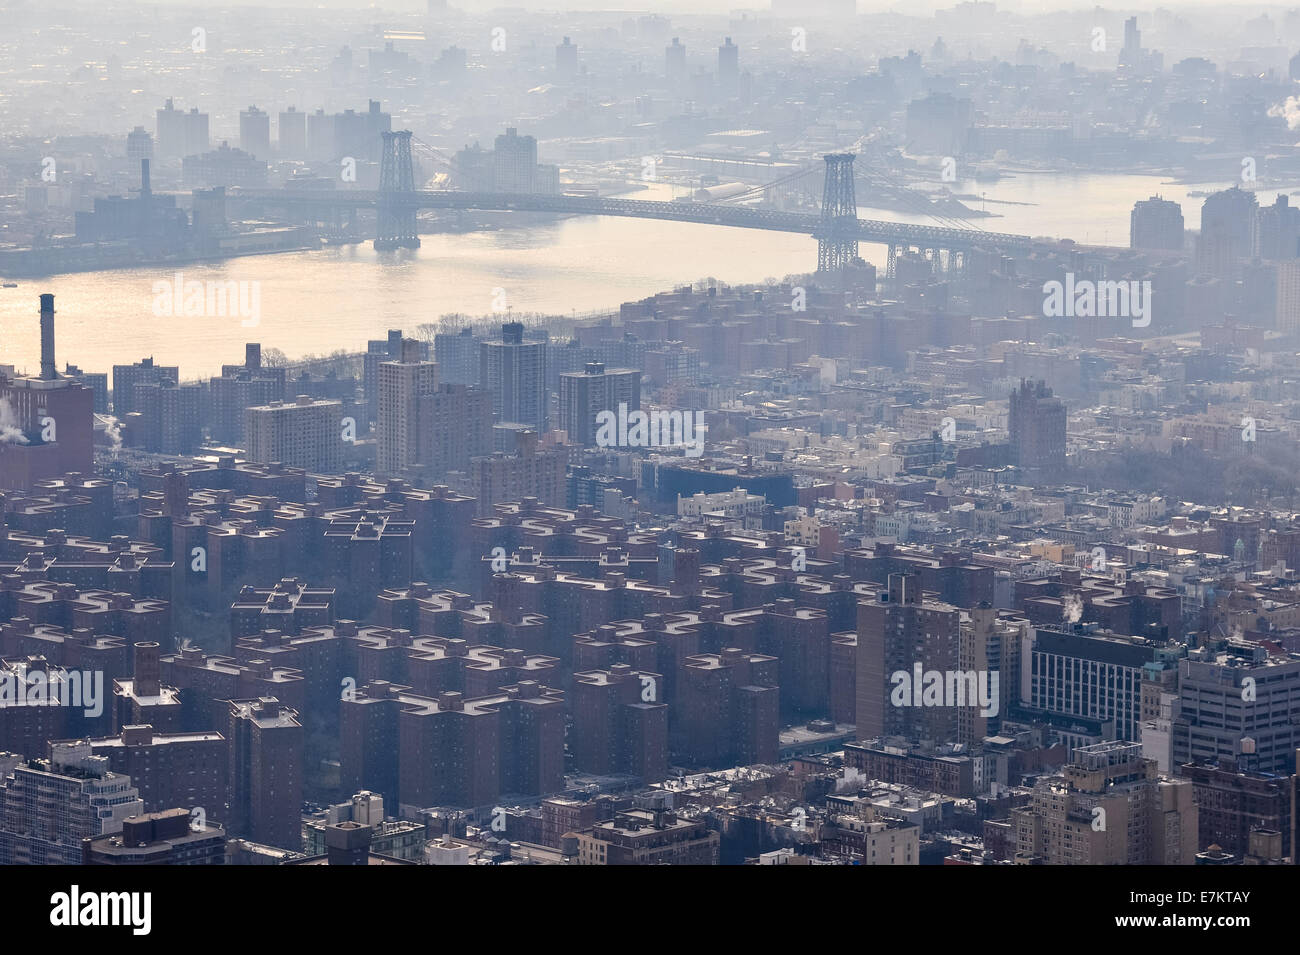 US, New York City. View from the Empire State Building observation deck. Williamsburg Bridge. - Stock Image